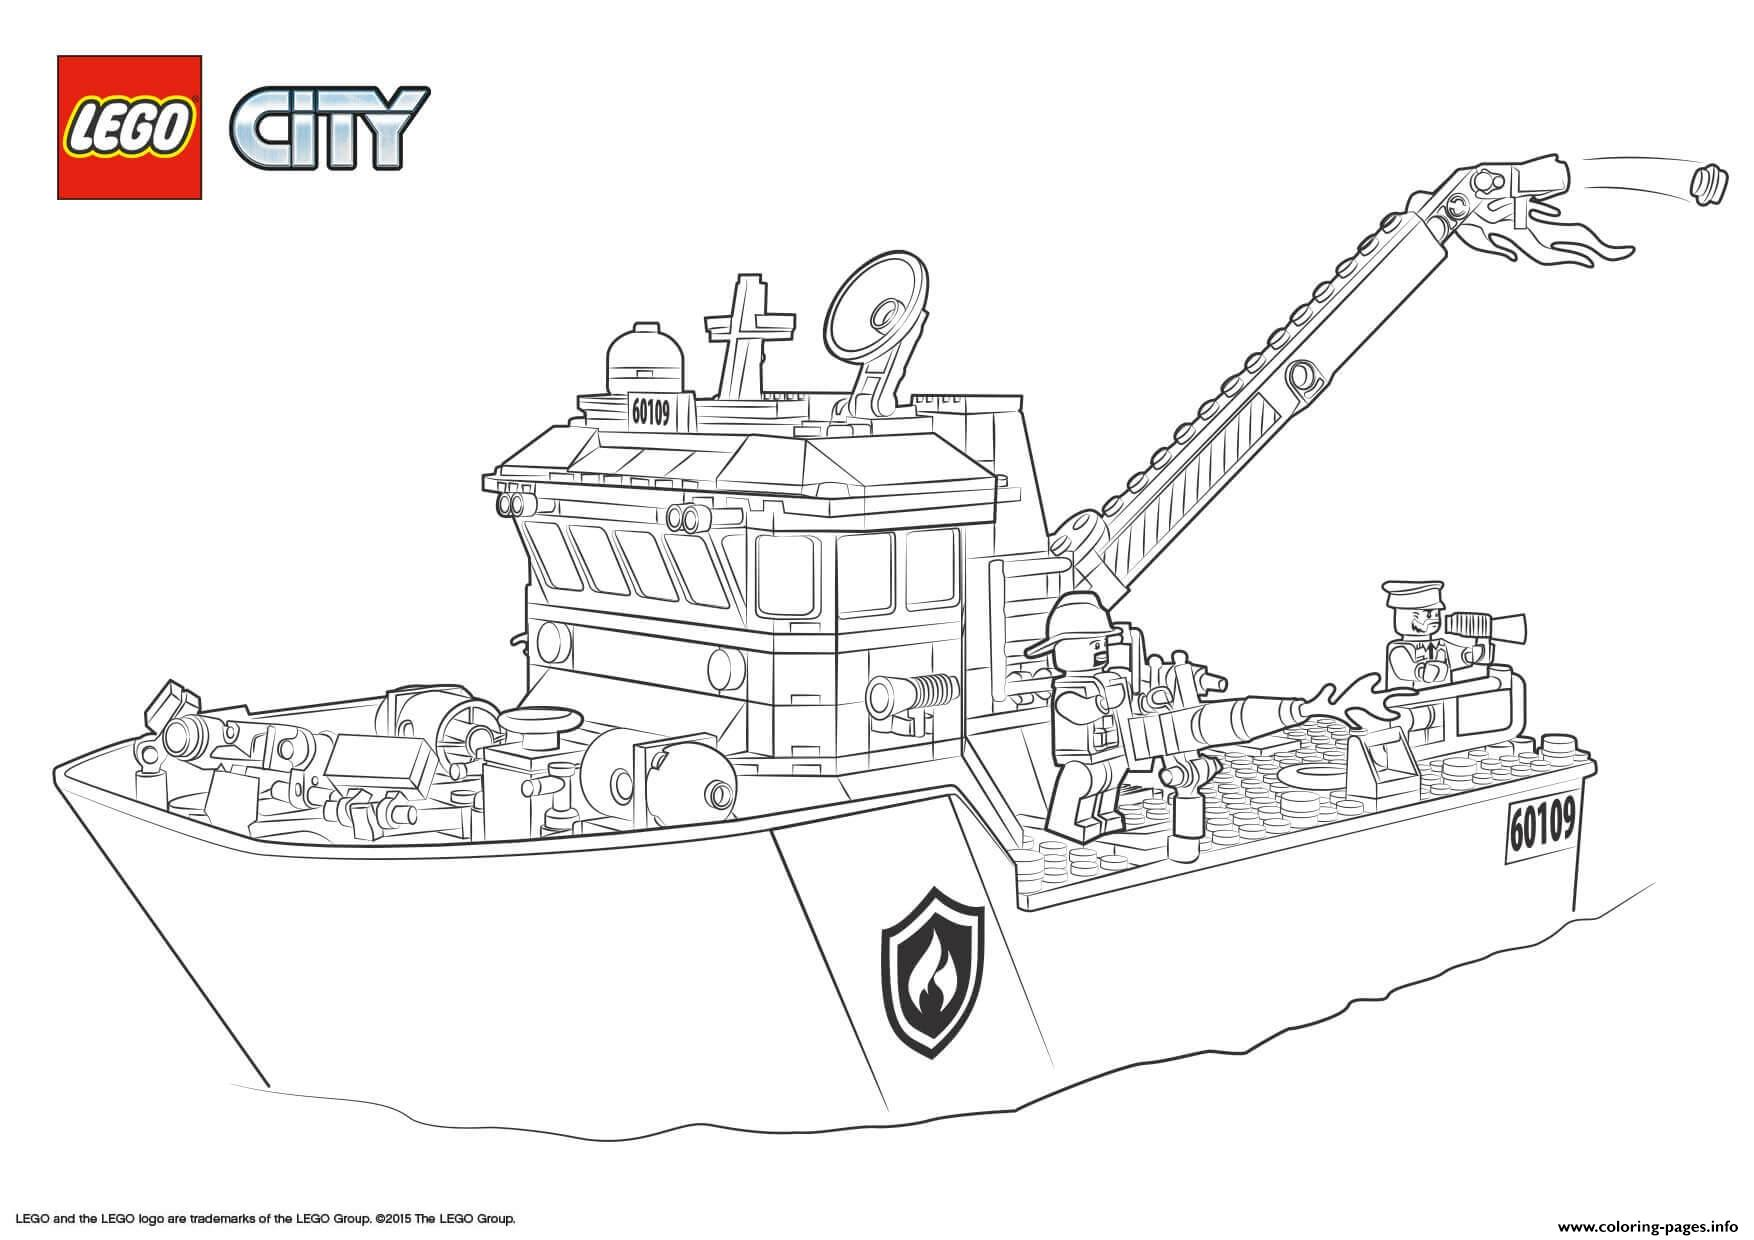 Lego City Fire Boat coloring pages